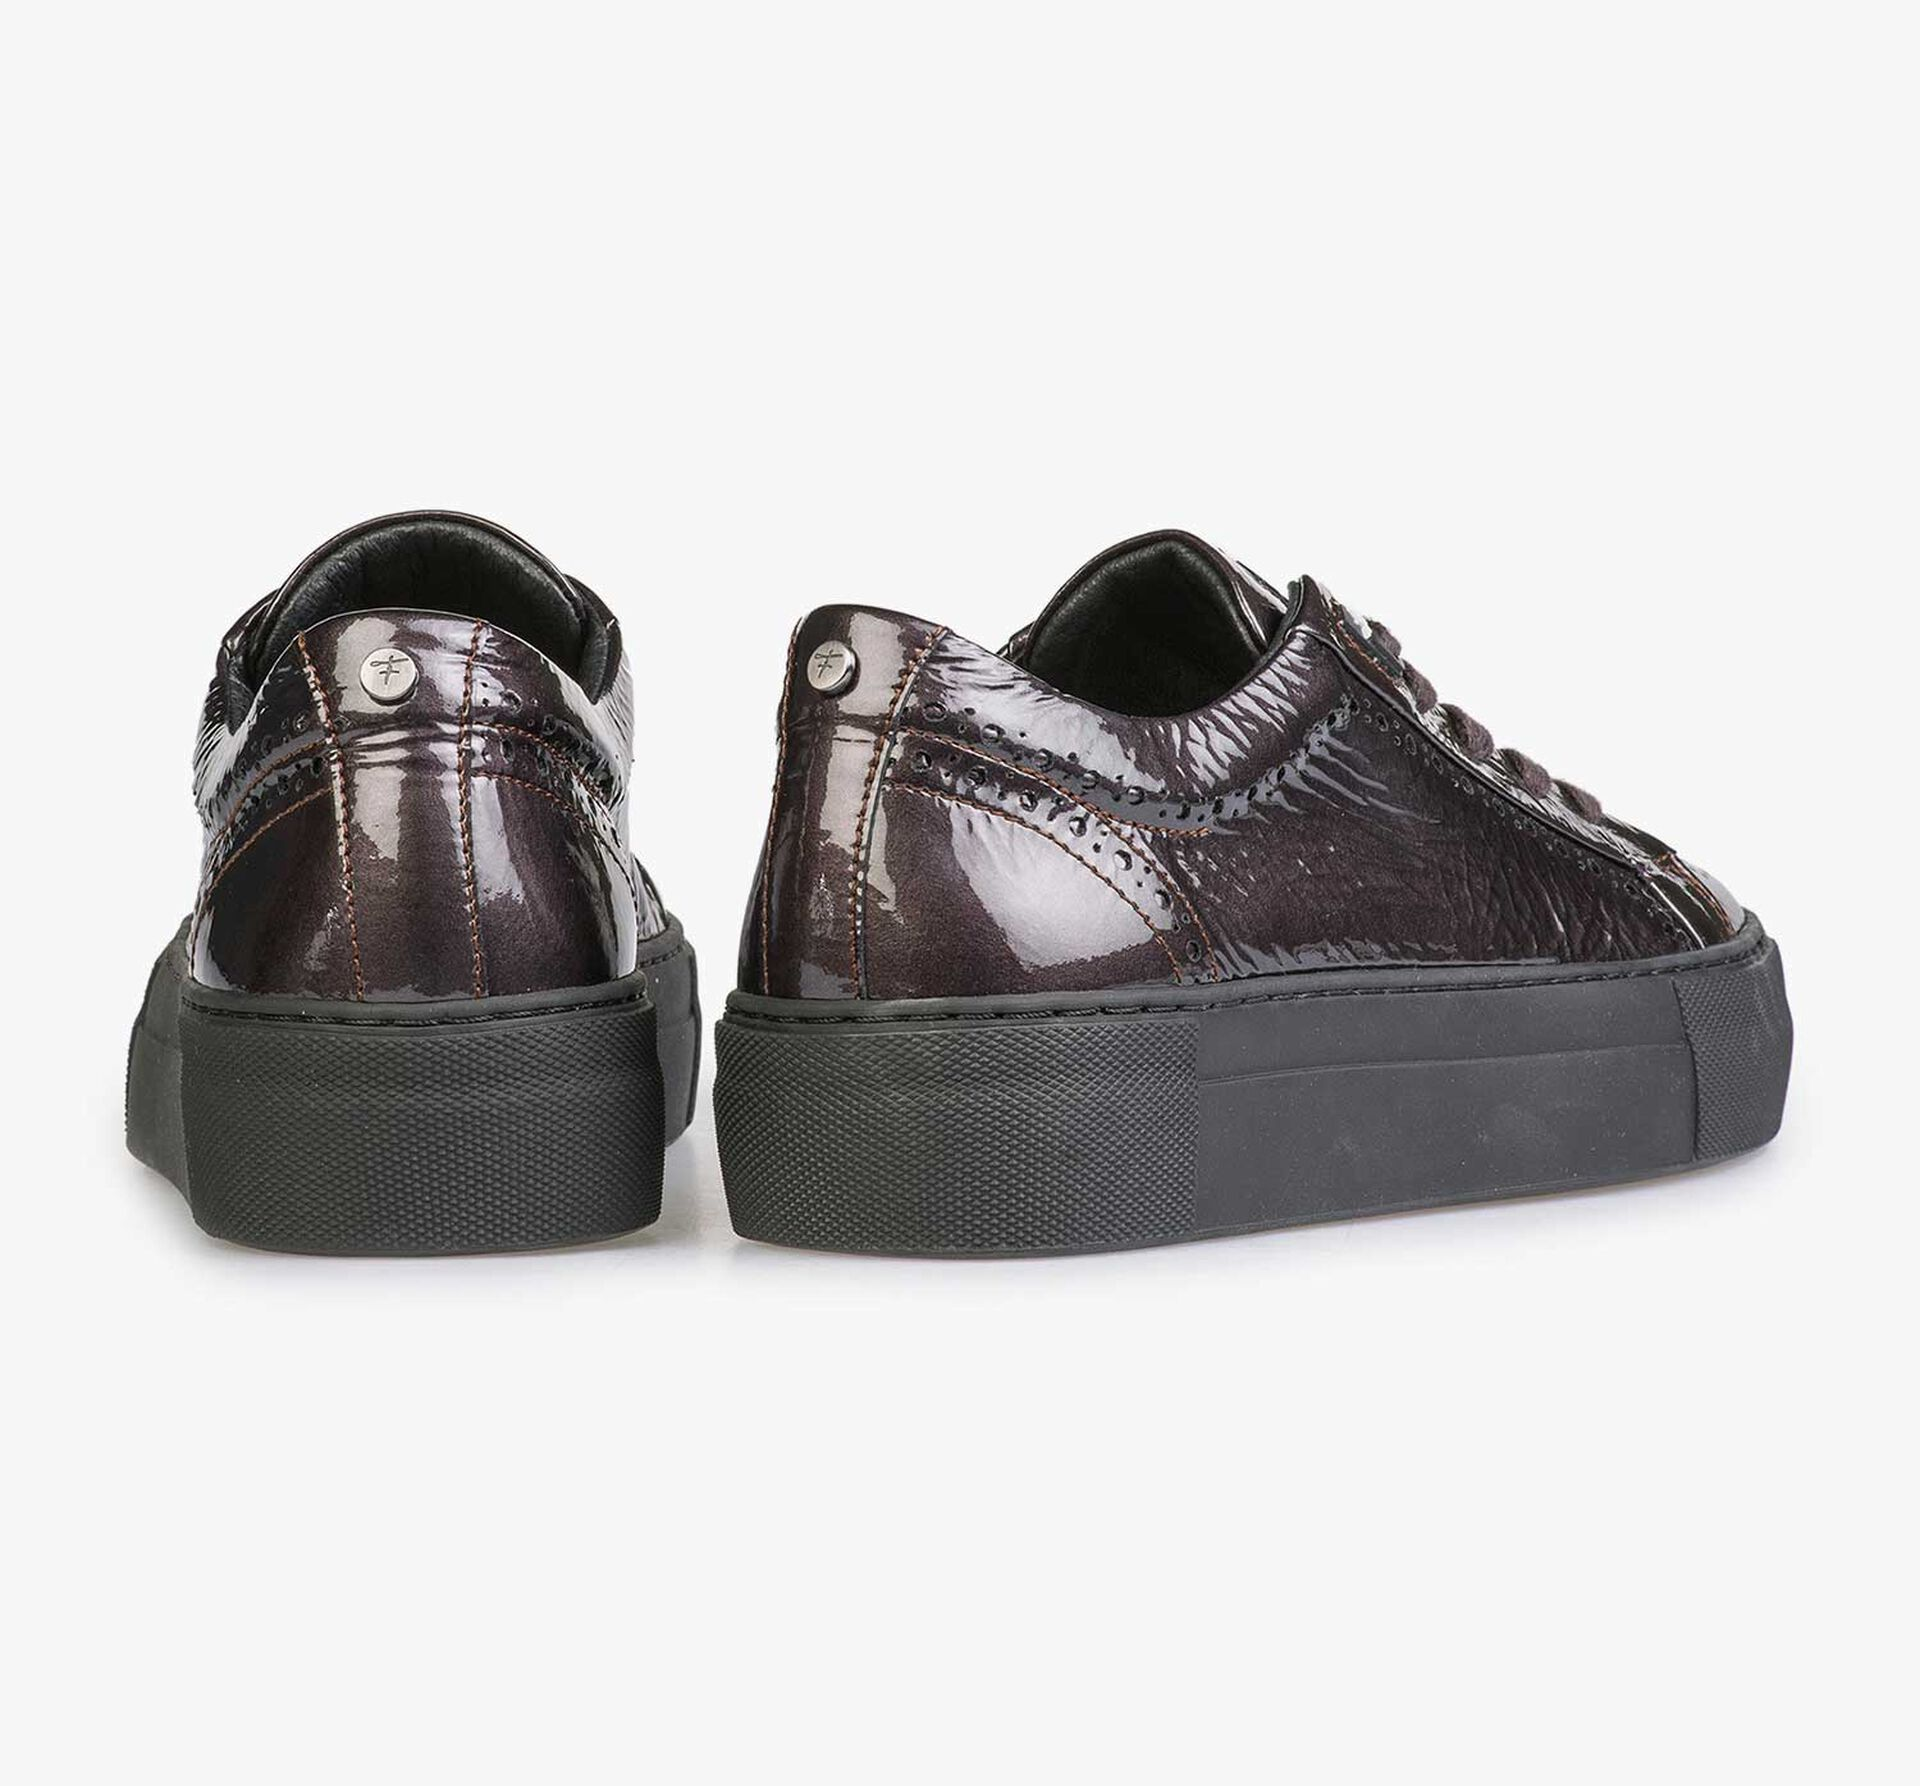 Burgundy red & taupe-coloured patent leather sneaker with wrinkle effect